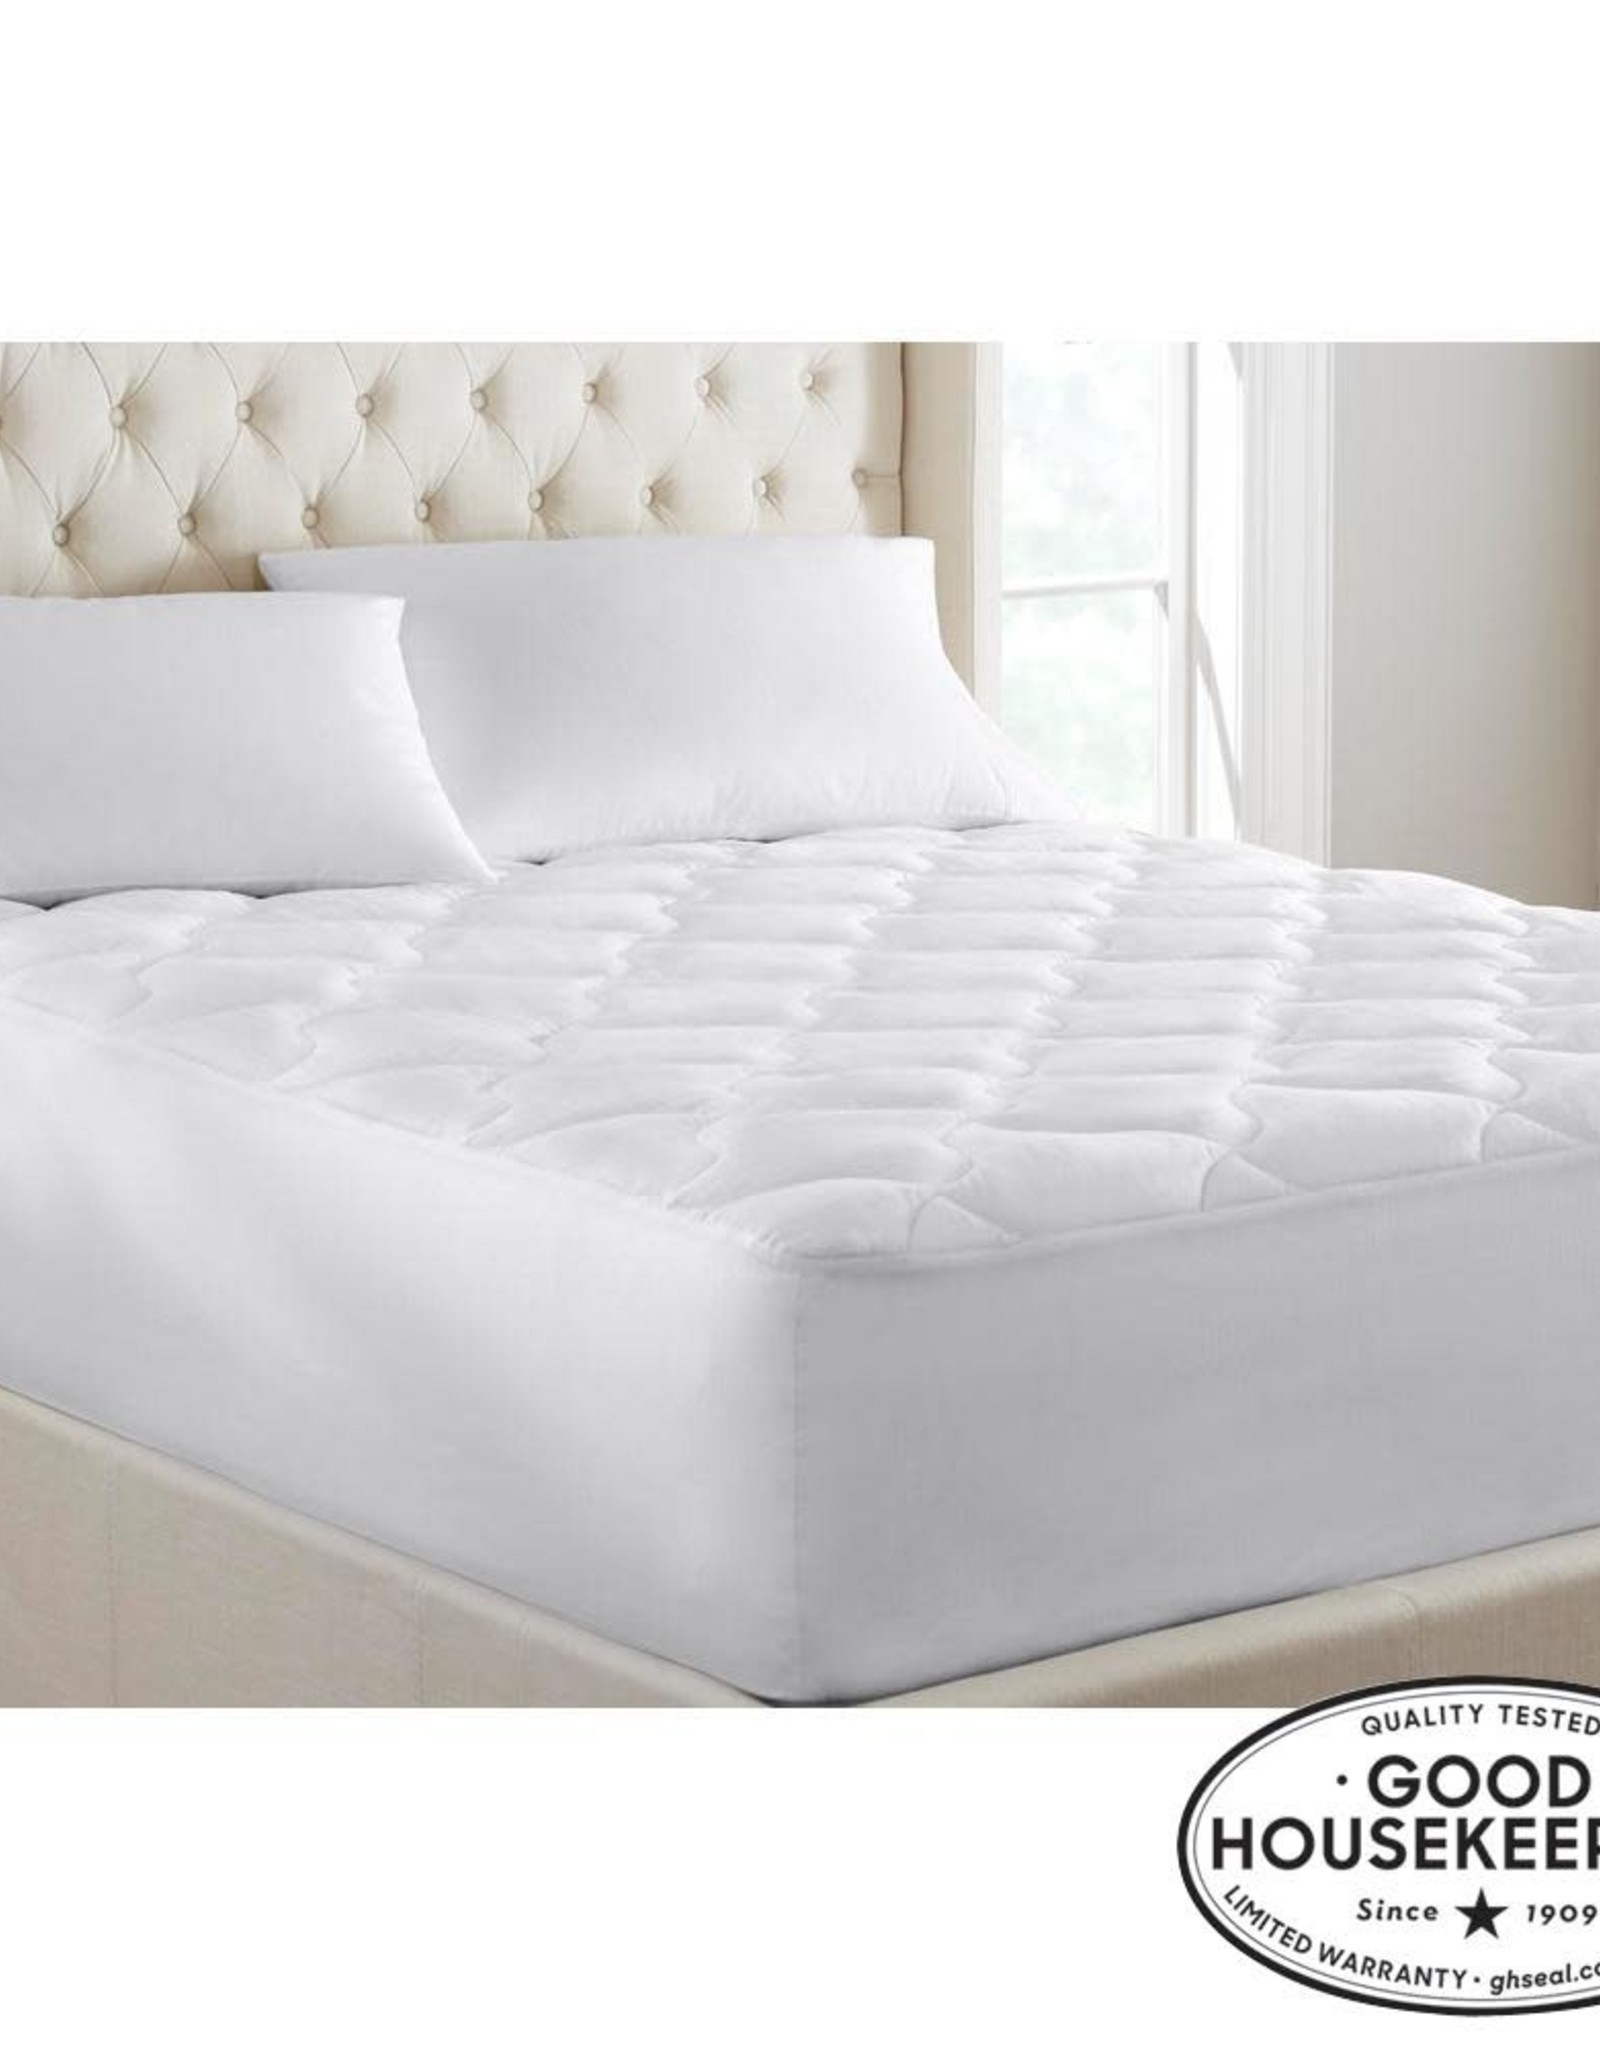 Home Decorators Collection Ultimate Comfort Queen Mattress Pad